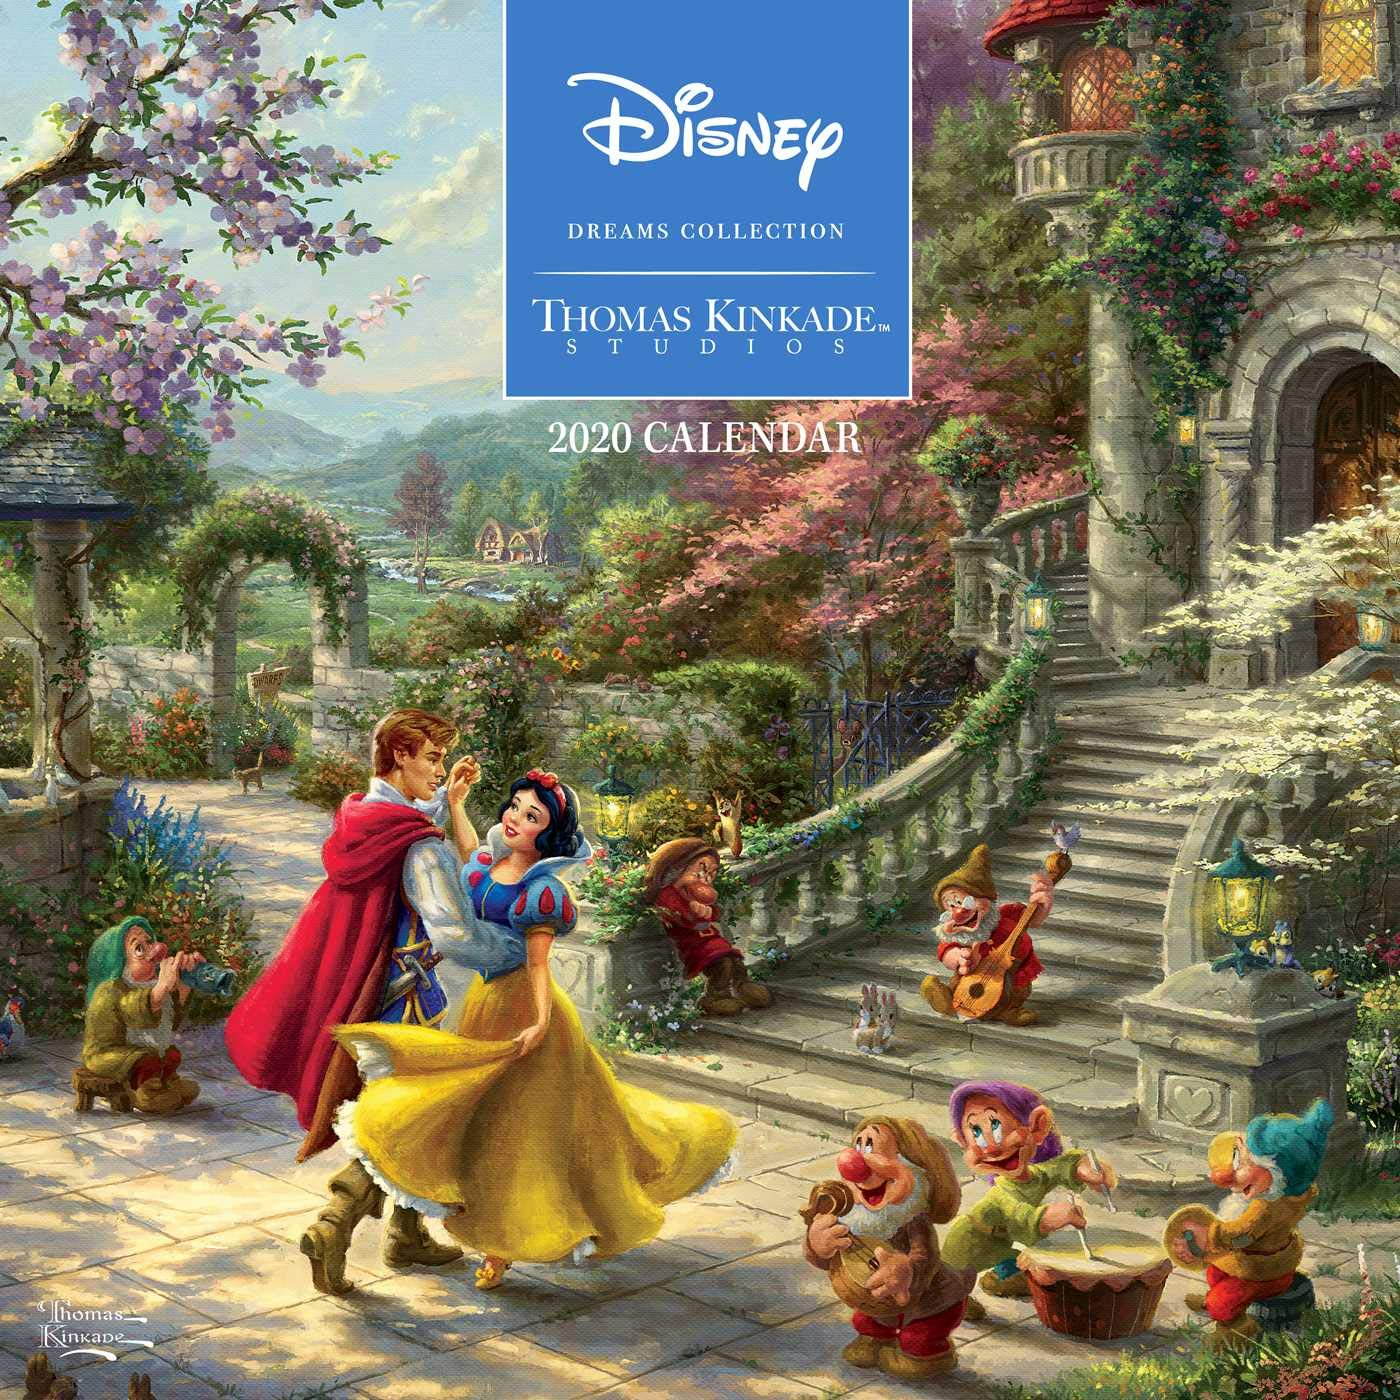 Disney 2020 Calendar Amazon.com: Thomas Kinkade Studios: Disney Dreams Collection 2020